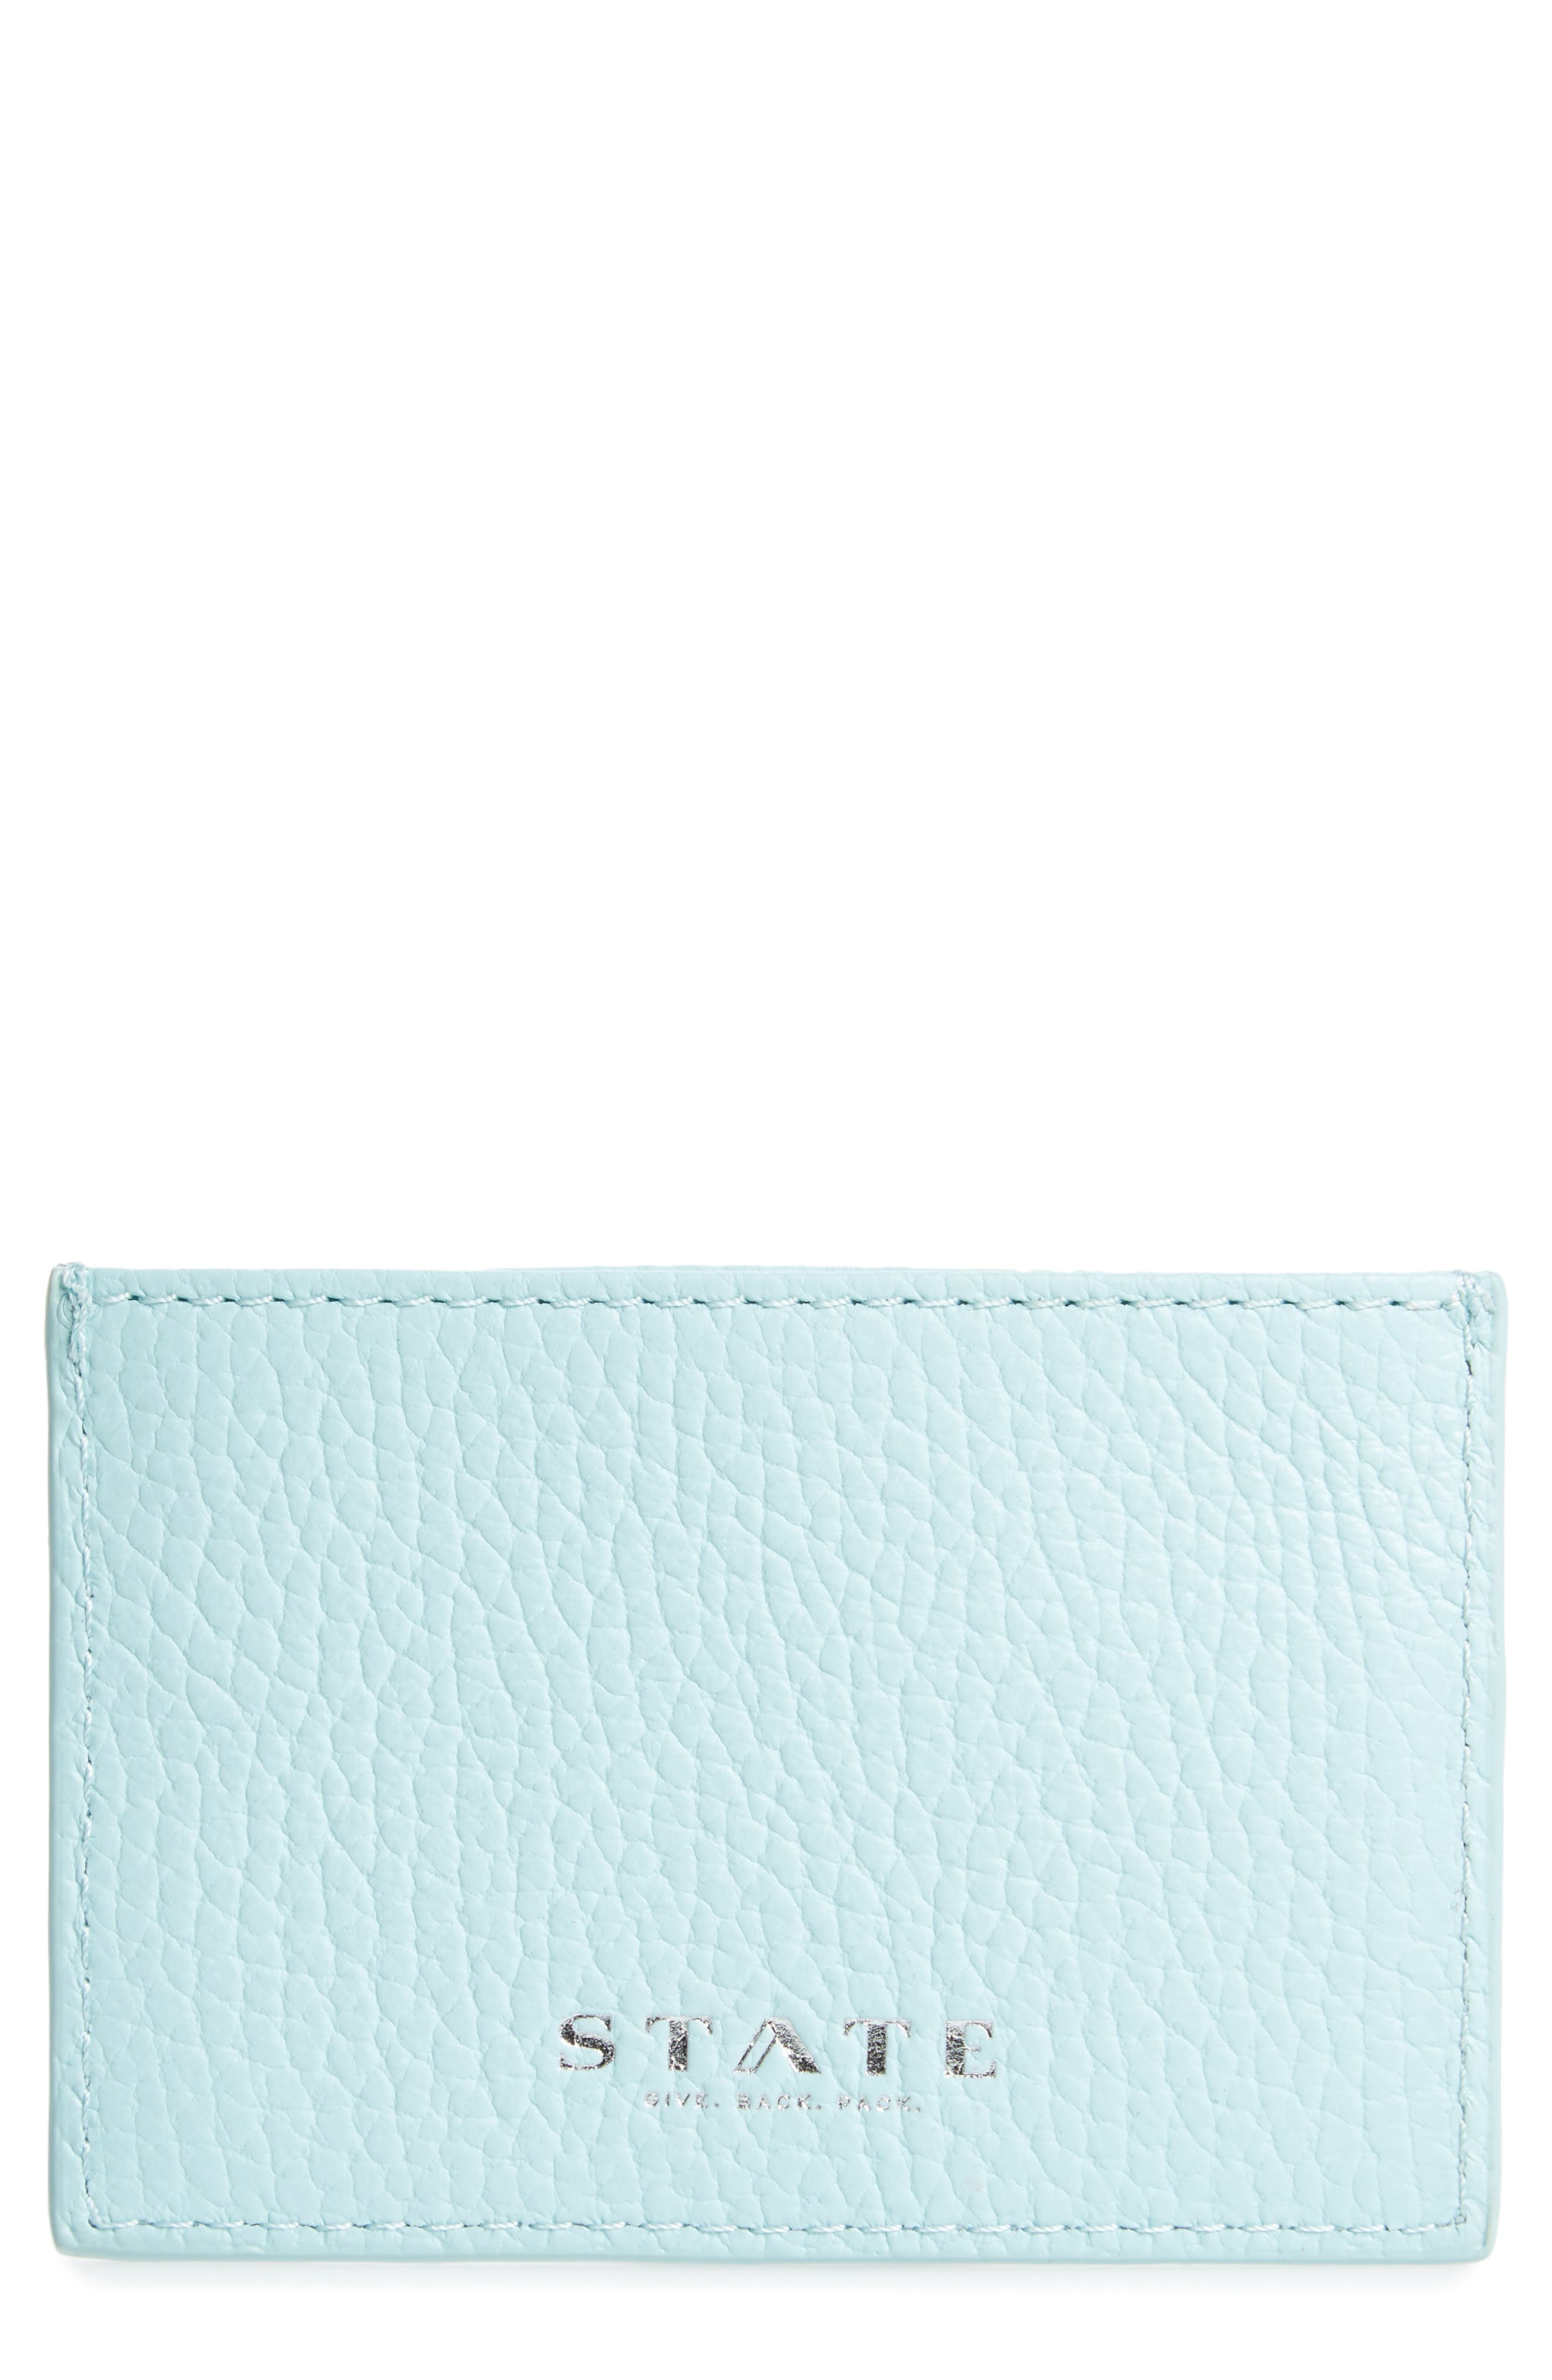 Main Image - STATE Bags Greenwood Monaco Leather Card Case